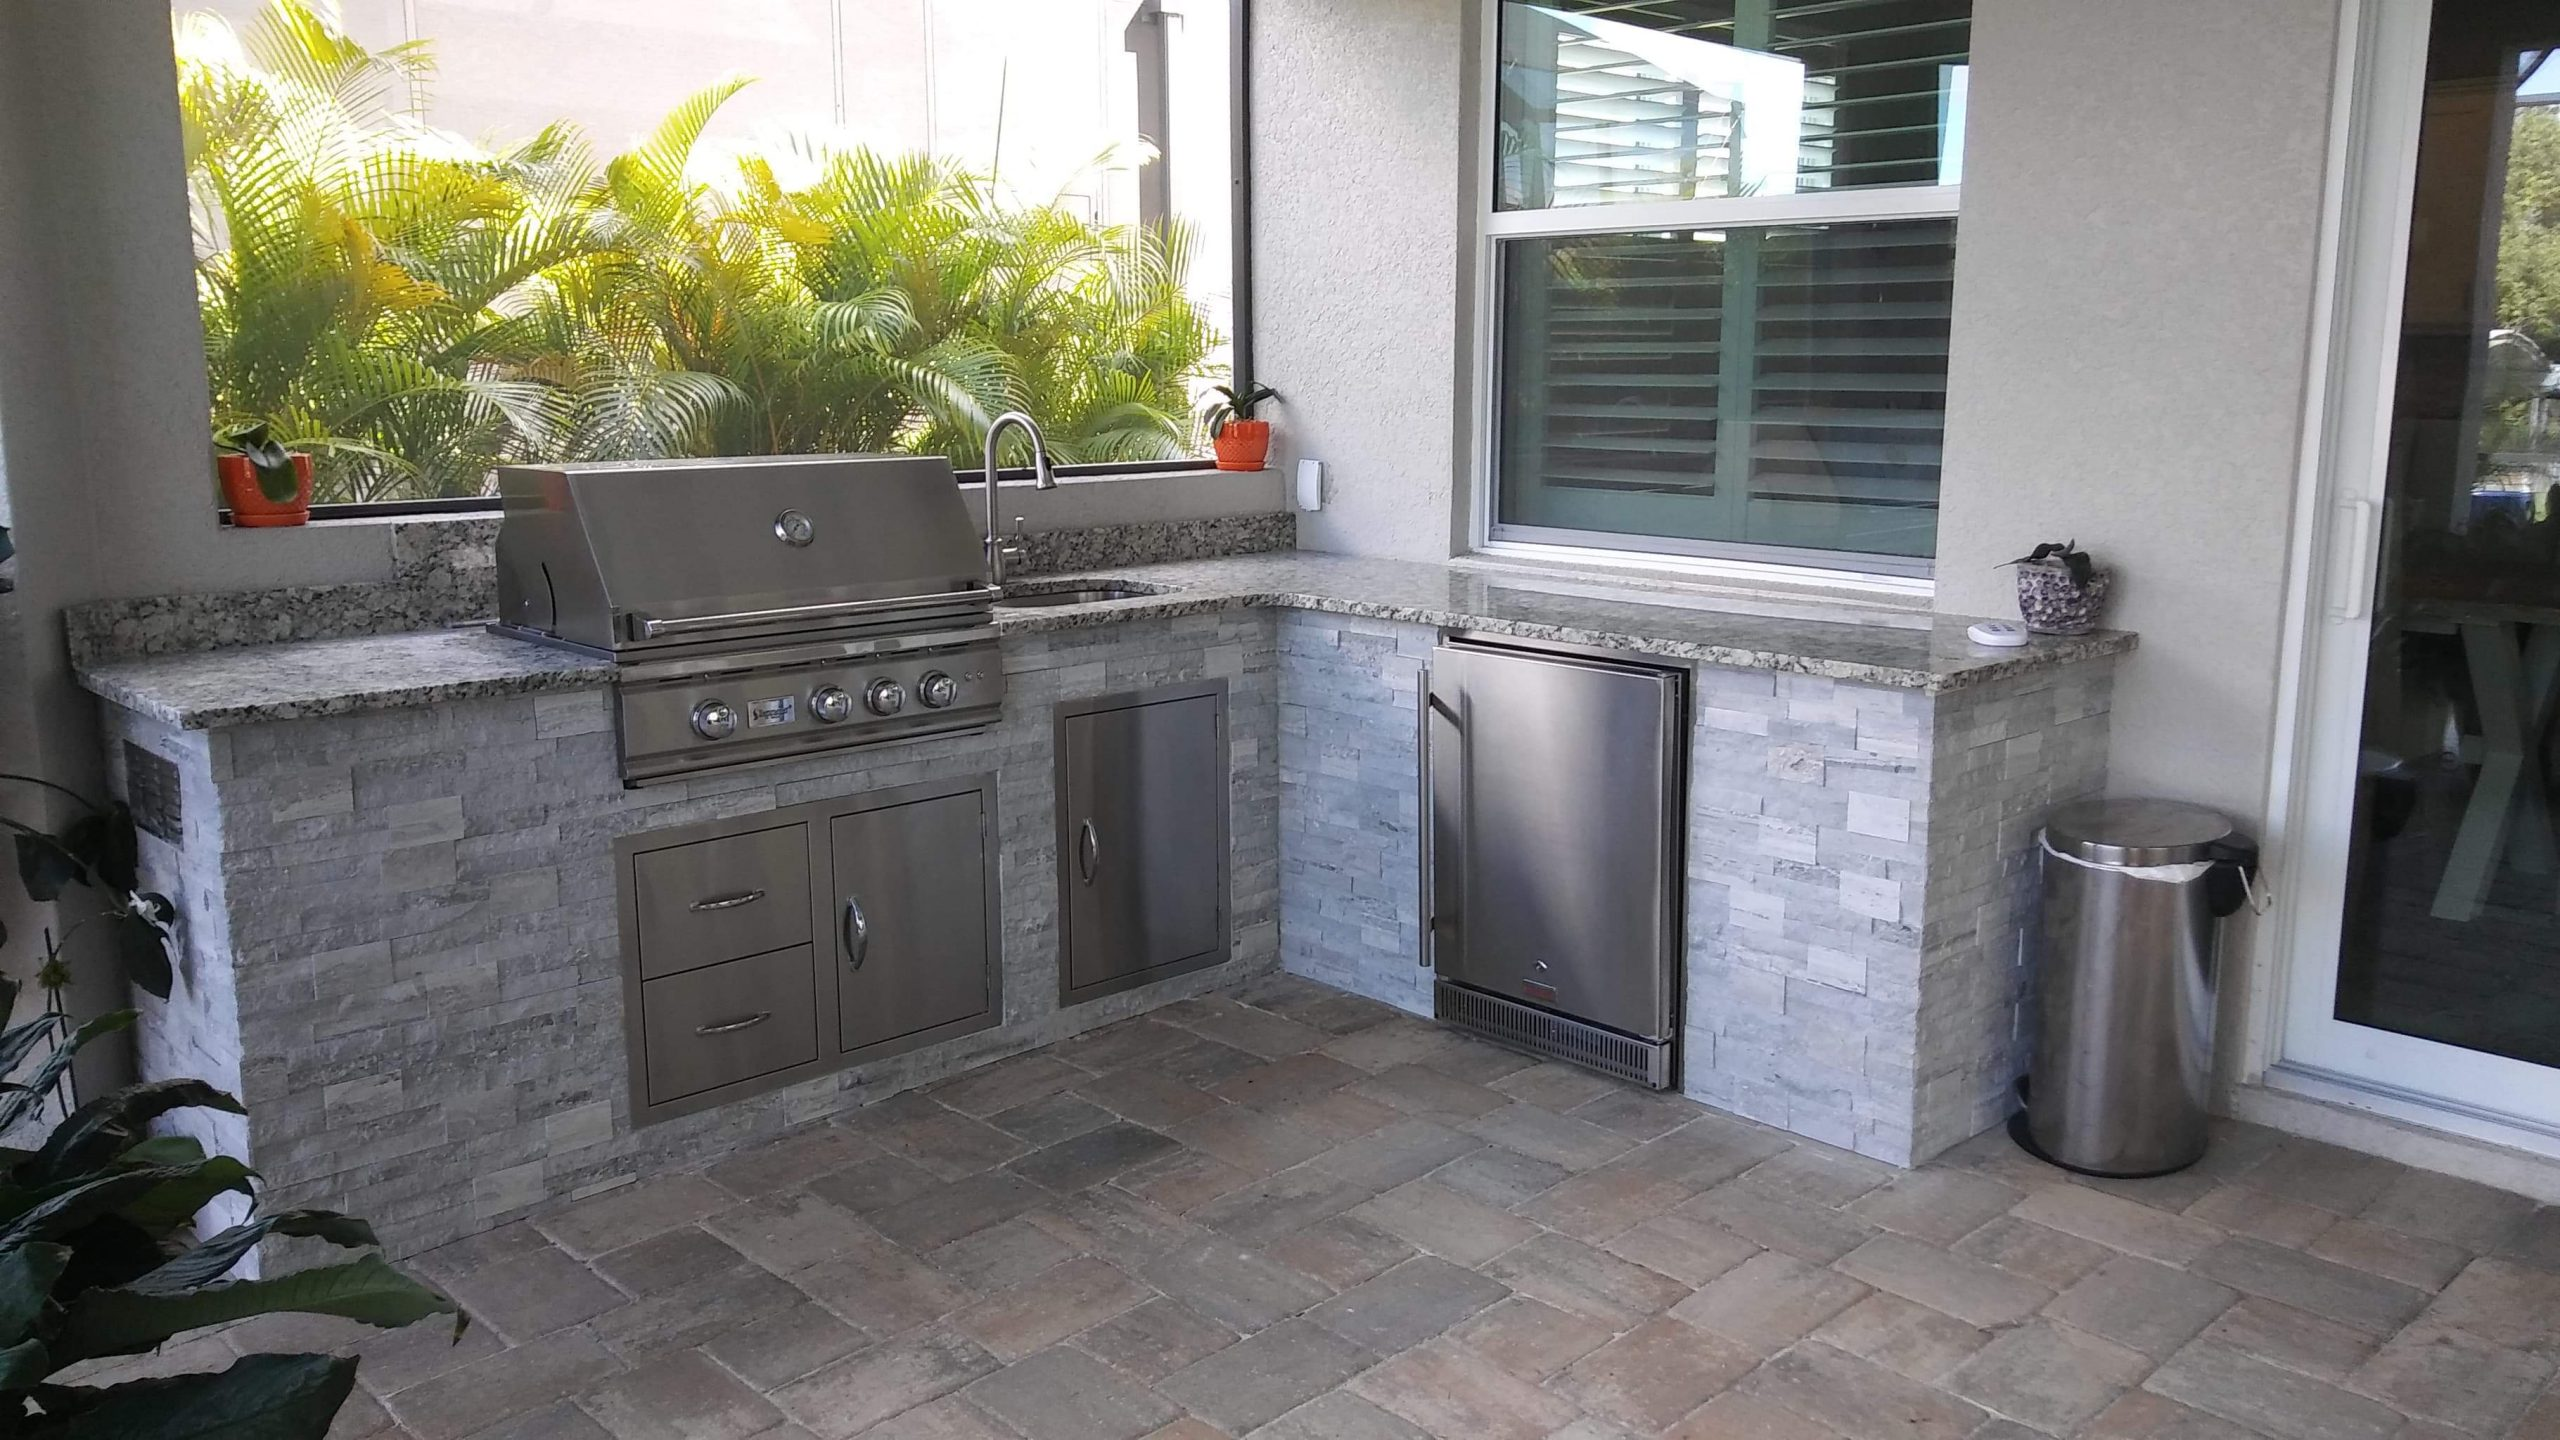 Outdoor Kitchens In Bradenton Past Projects Radil Construction